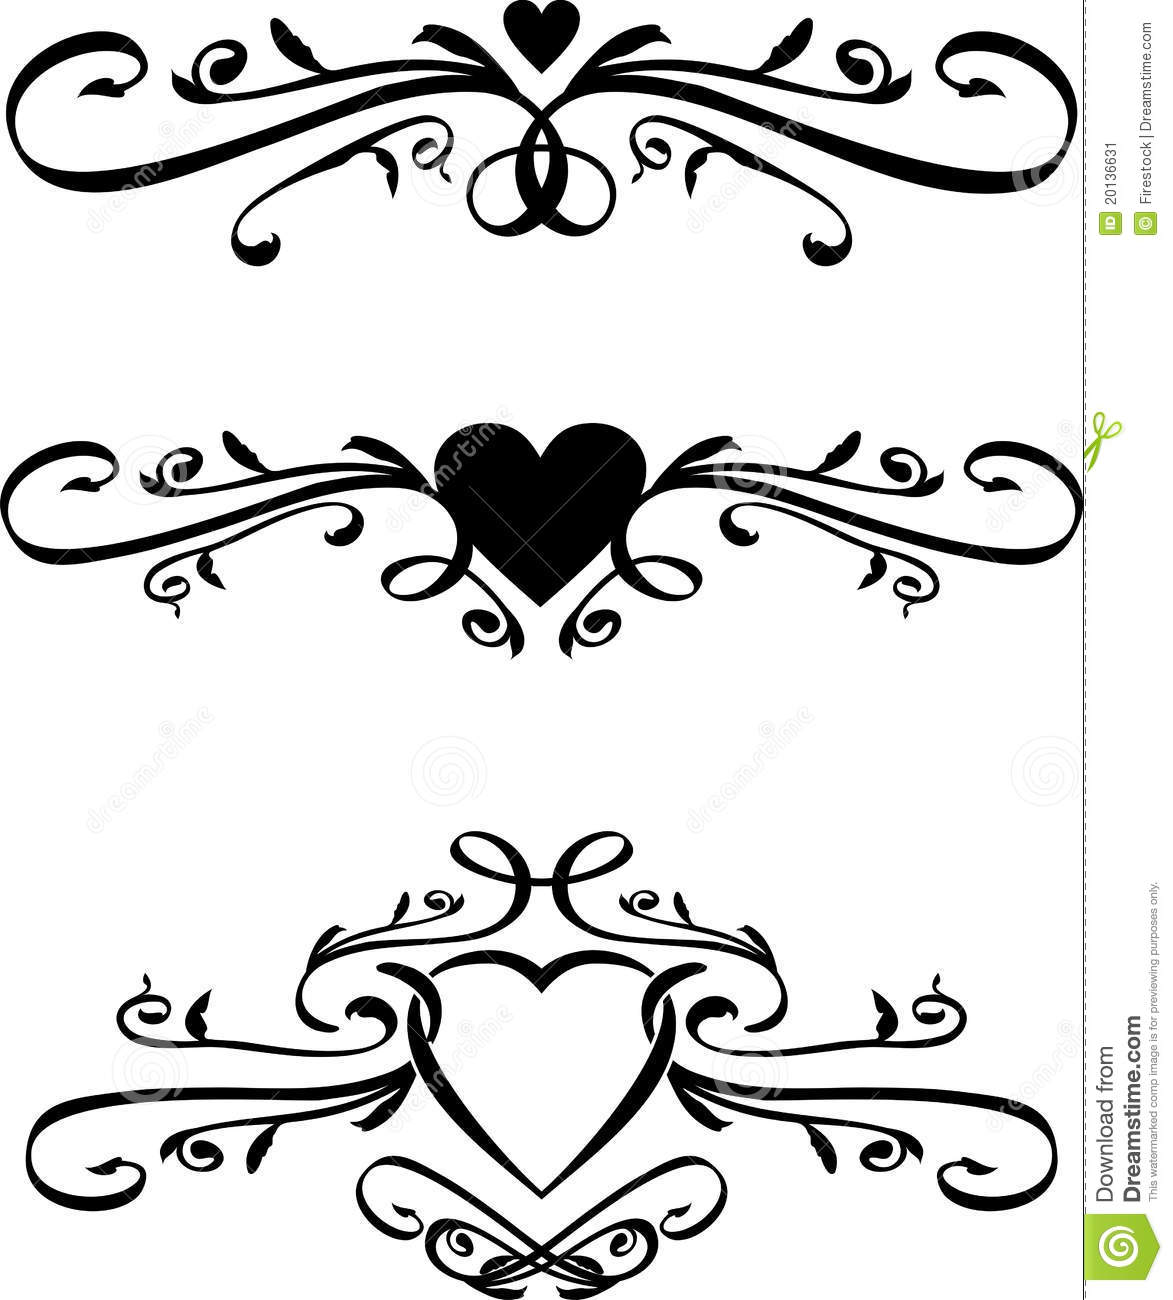 wedding scroll designs.